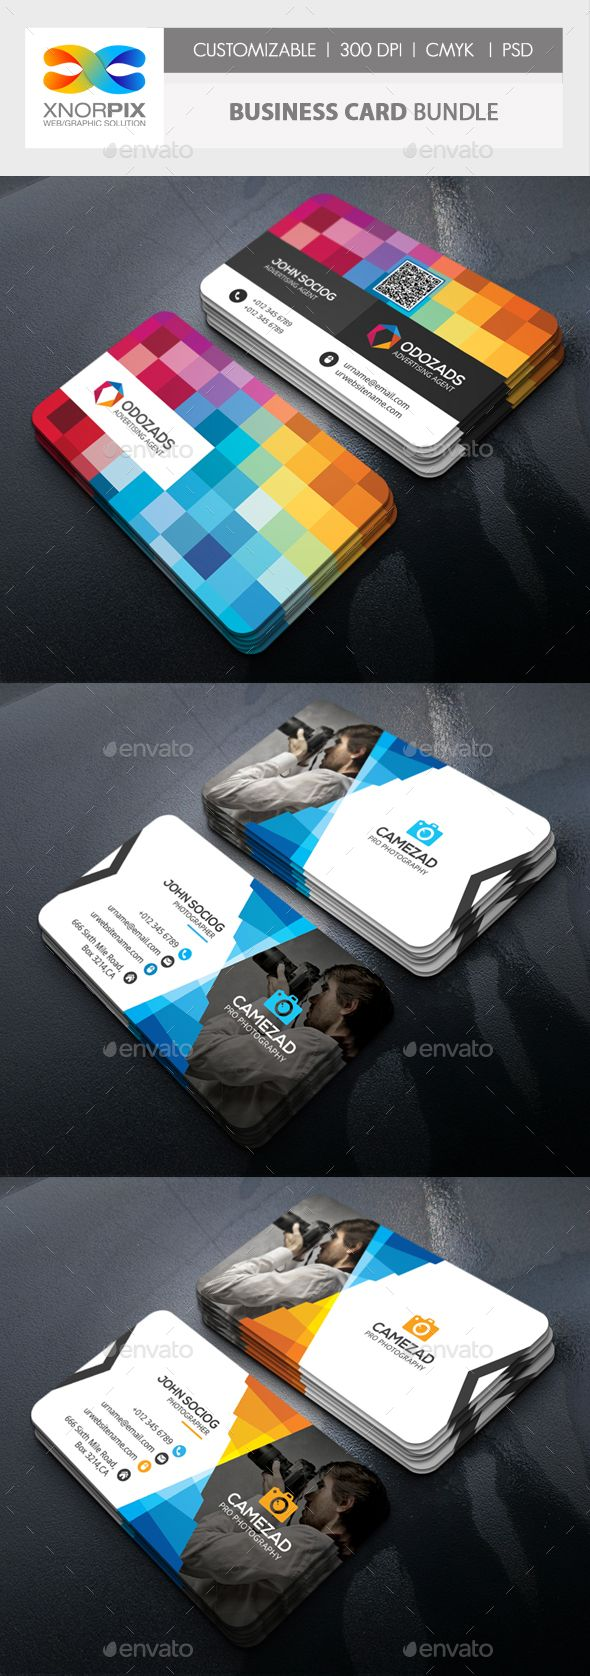 Business Card Bundle - #Corporate #Business #Cards Download here: https://graphicriver.net/item/business-card-bundle/18822861?ref=alena994